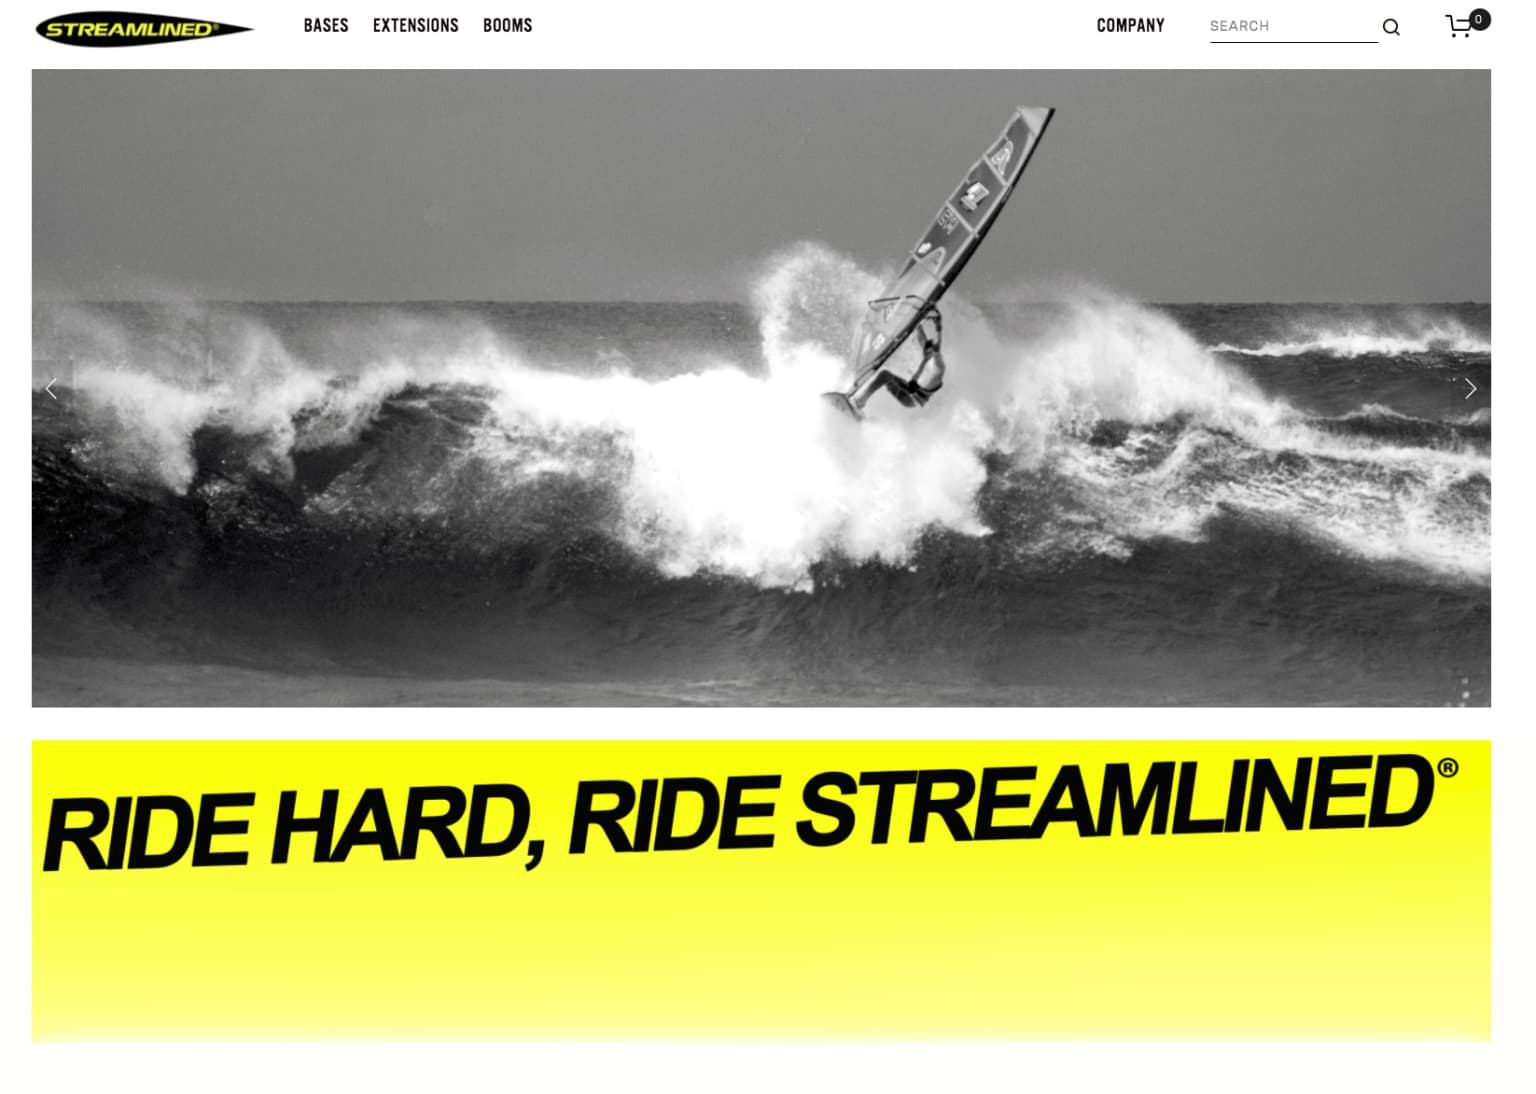 STREAMLINED WINDSURFING E-Commerce